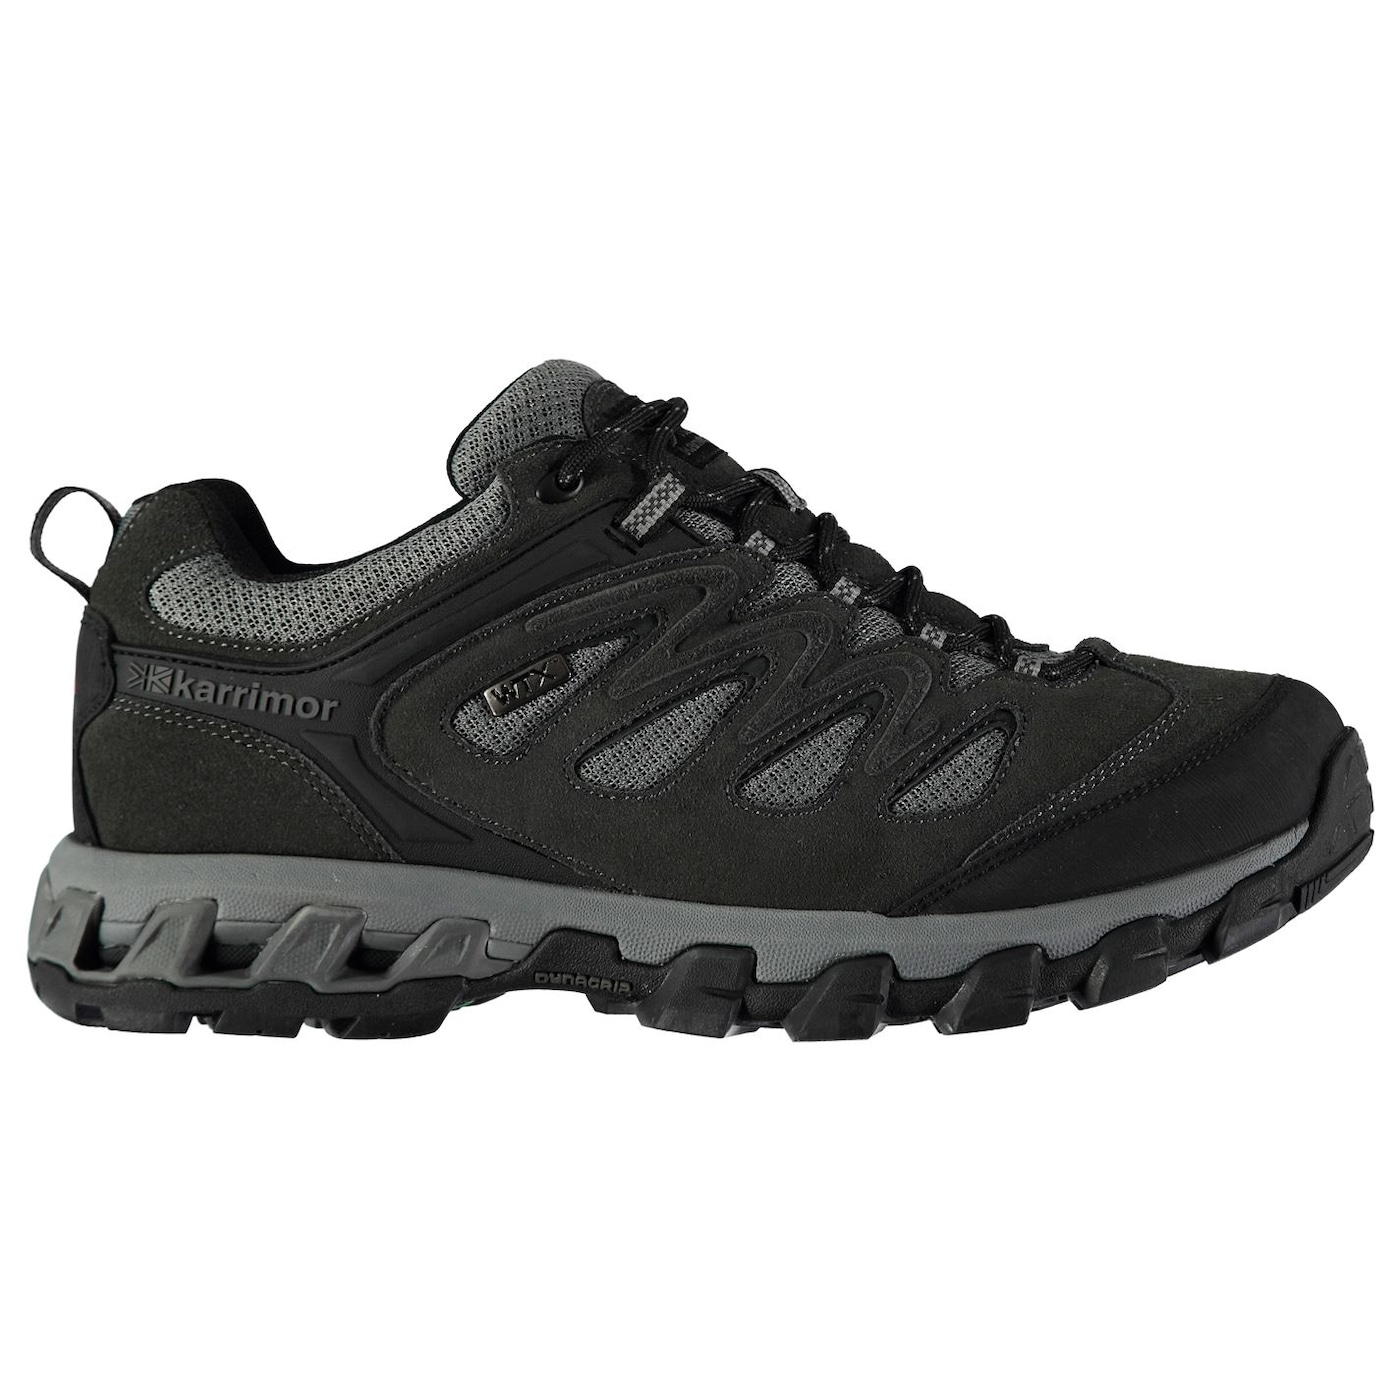 Karrimor Merlin Low Mens Walking Shoes